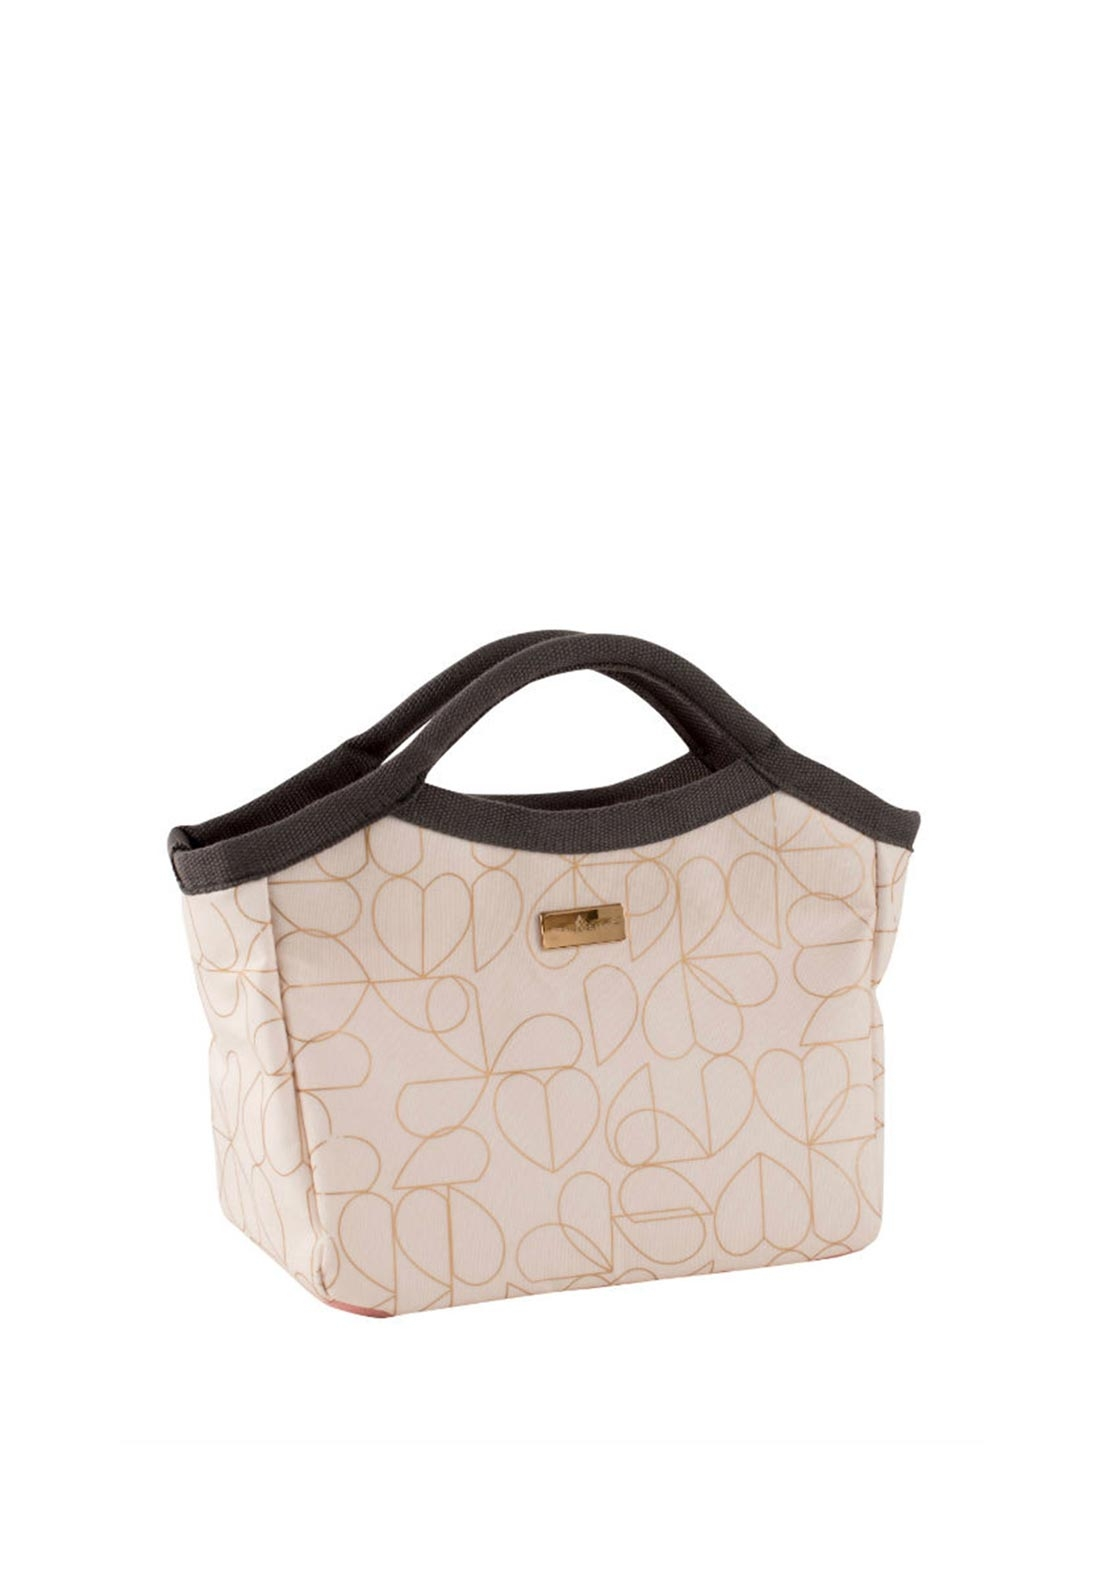 Beau & Elliot Oyster Insulated Lunch Bag